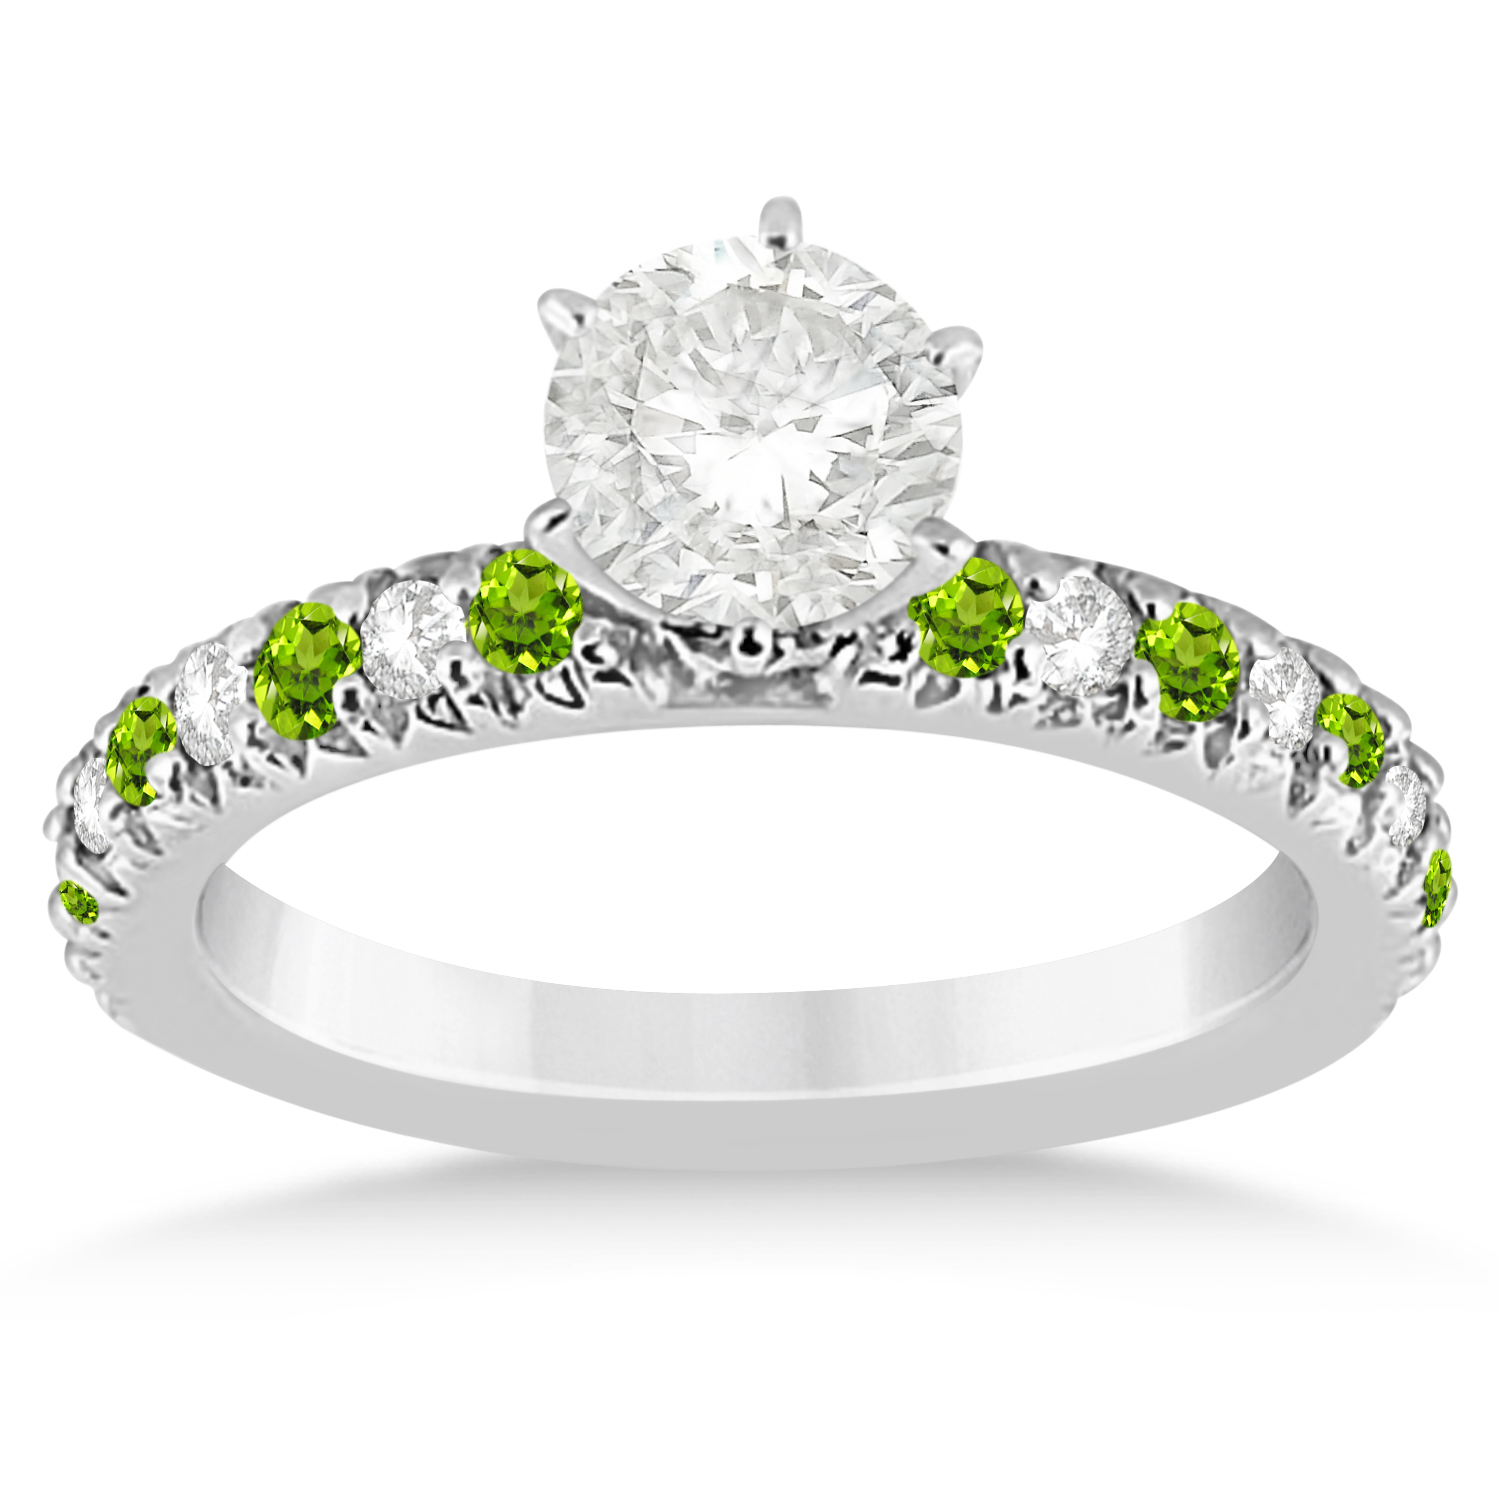 Peridot diamond bridal set setting palladium 114ct for Peridot wedding ring set